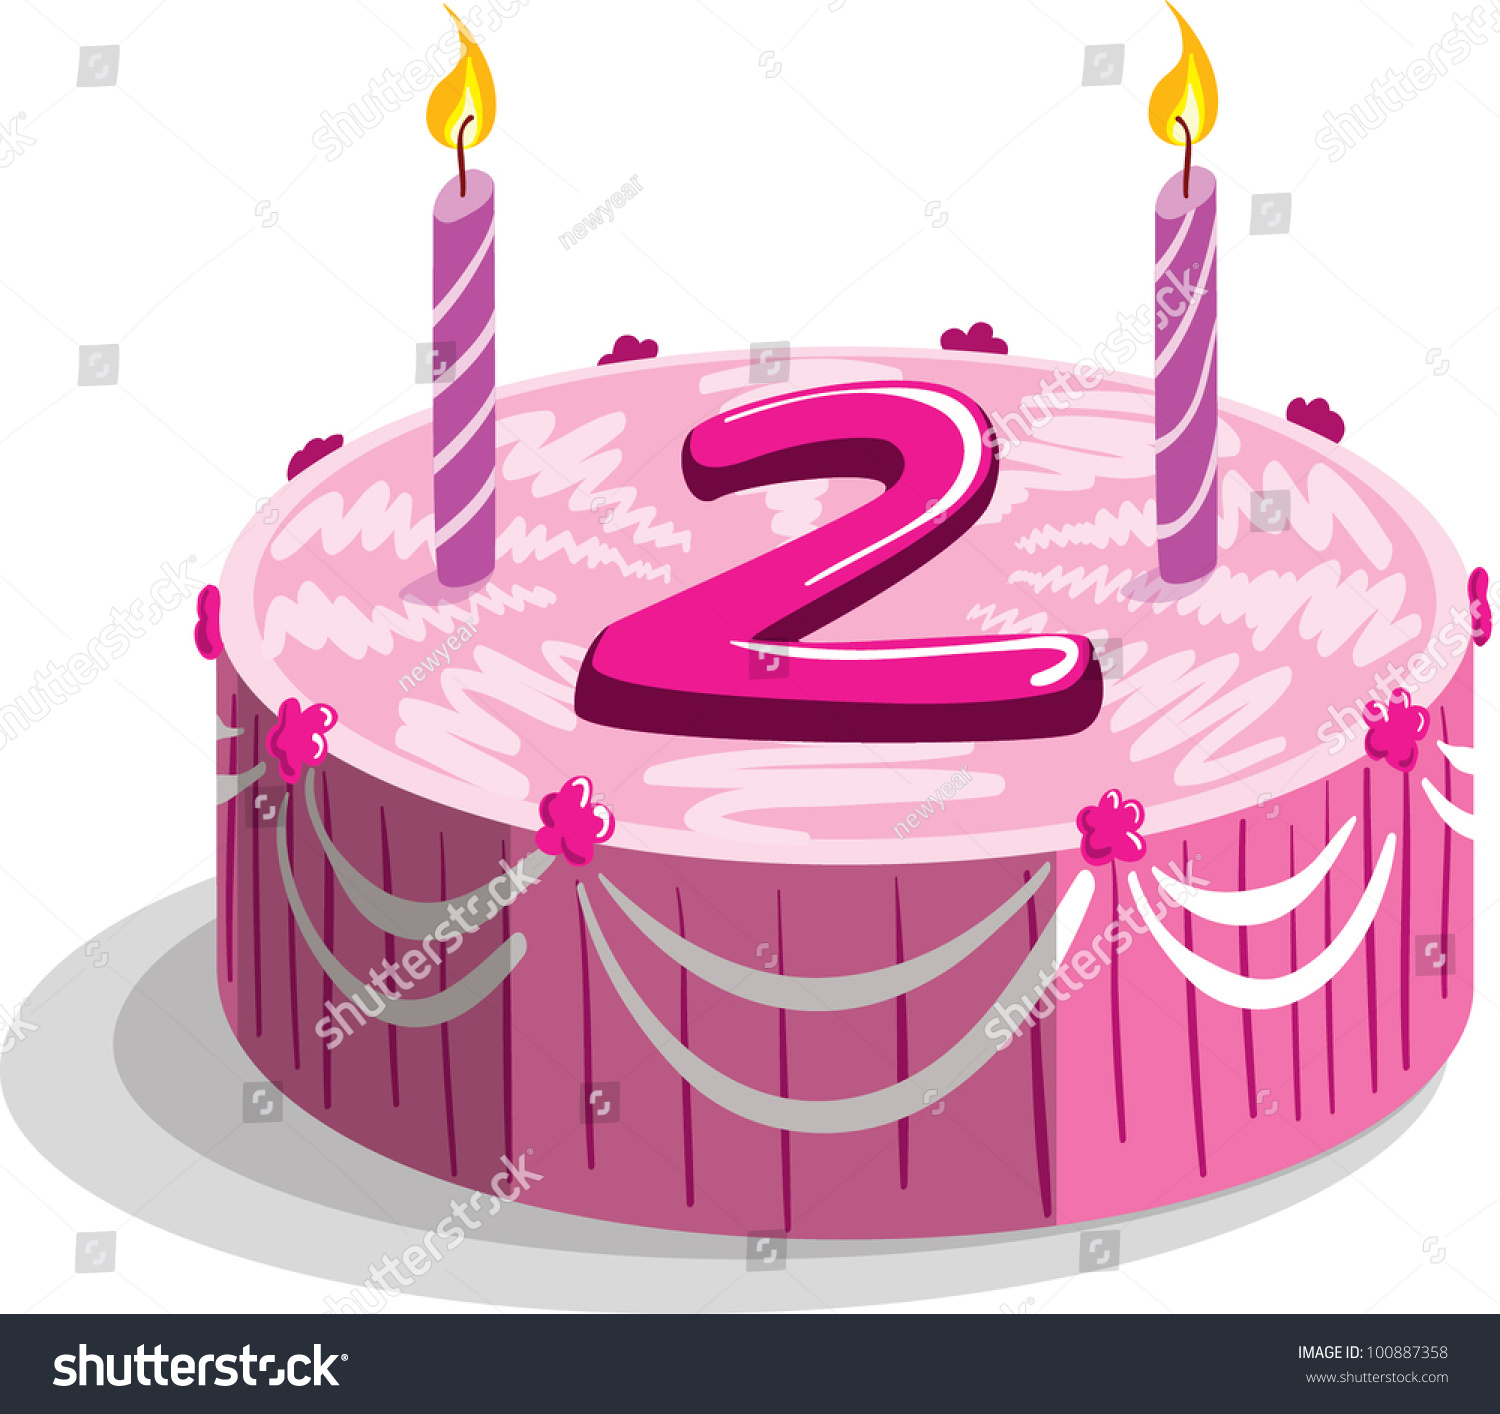 Second Birthday Cake Stock Vector Royalty Free 100887358